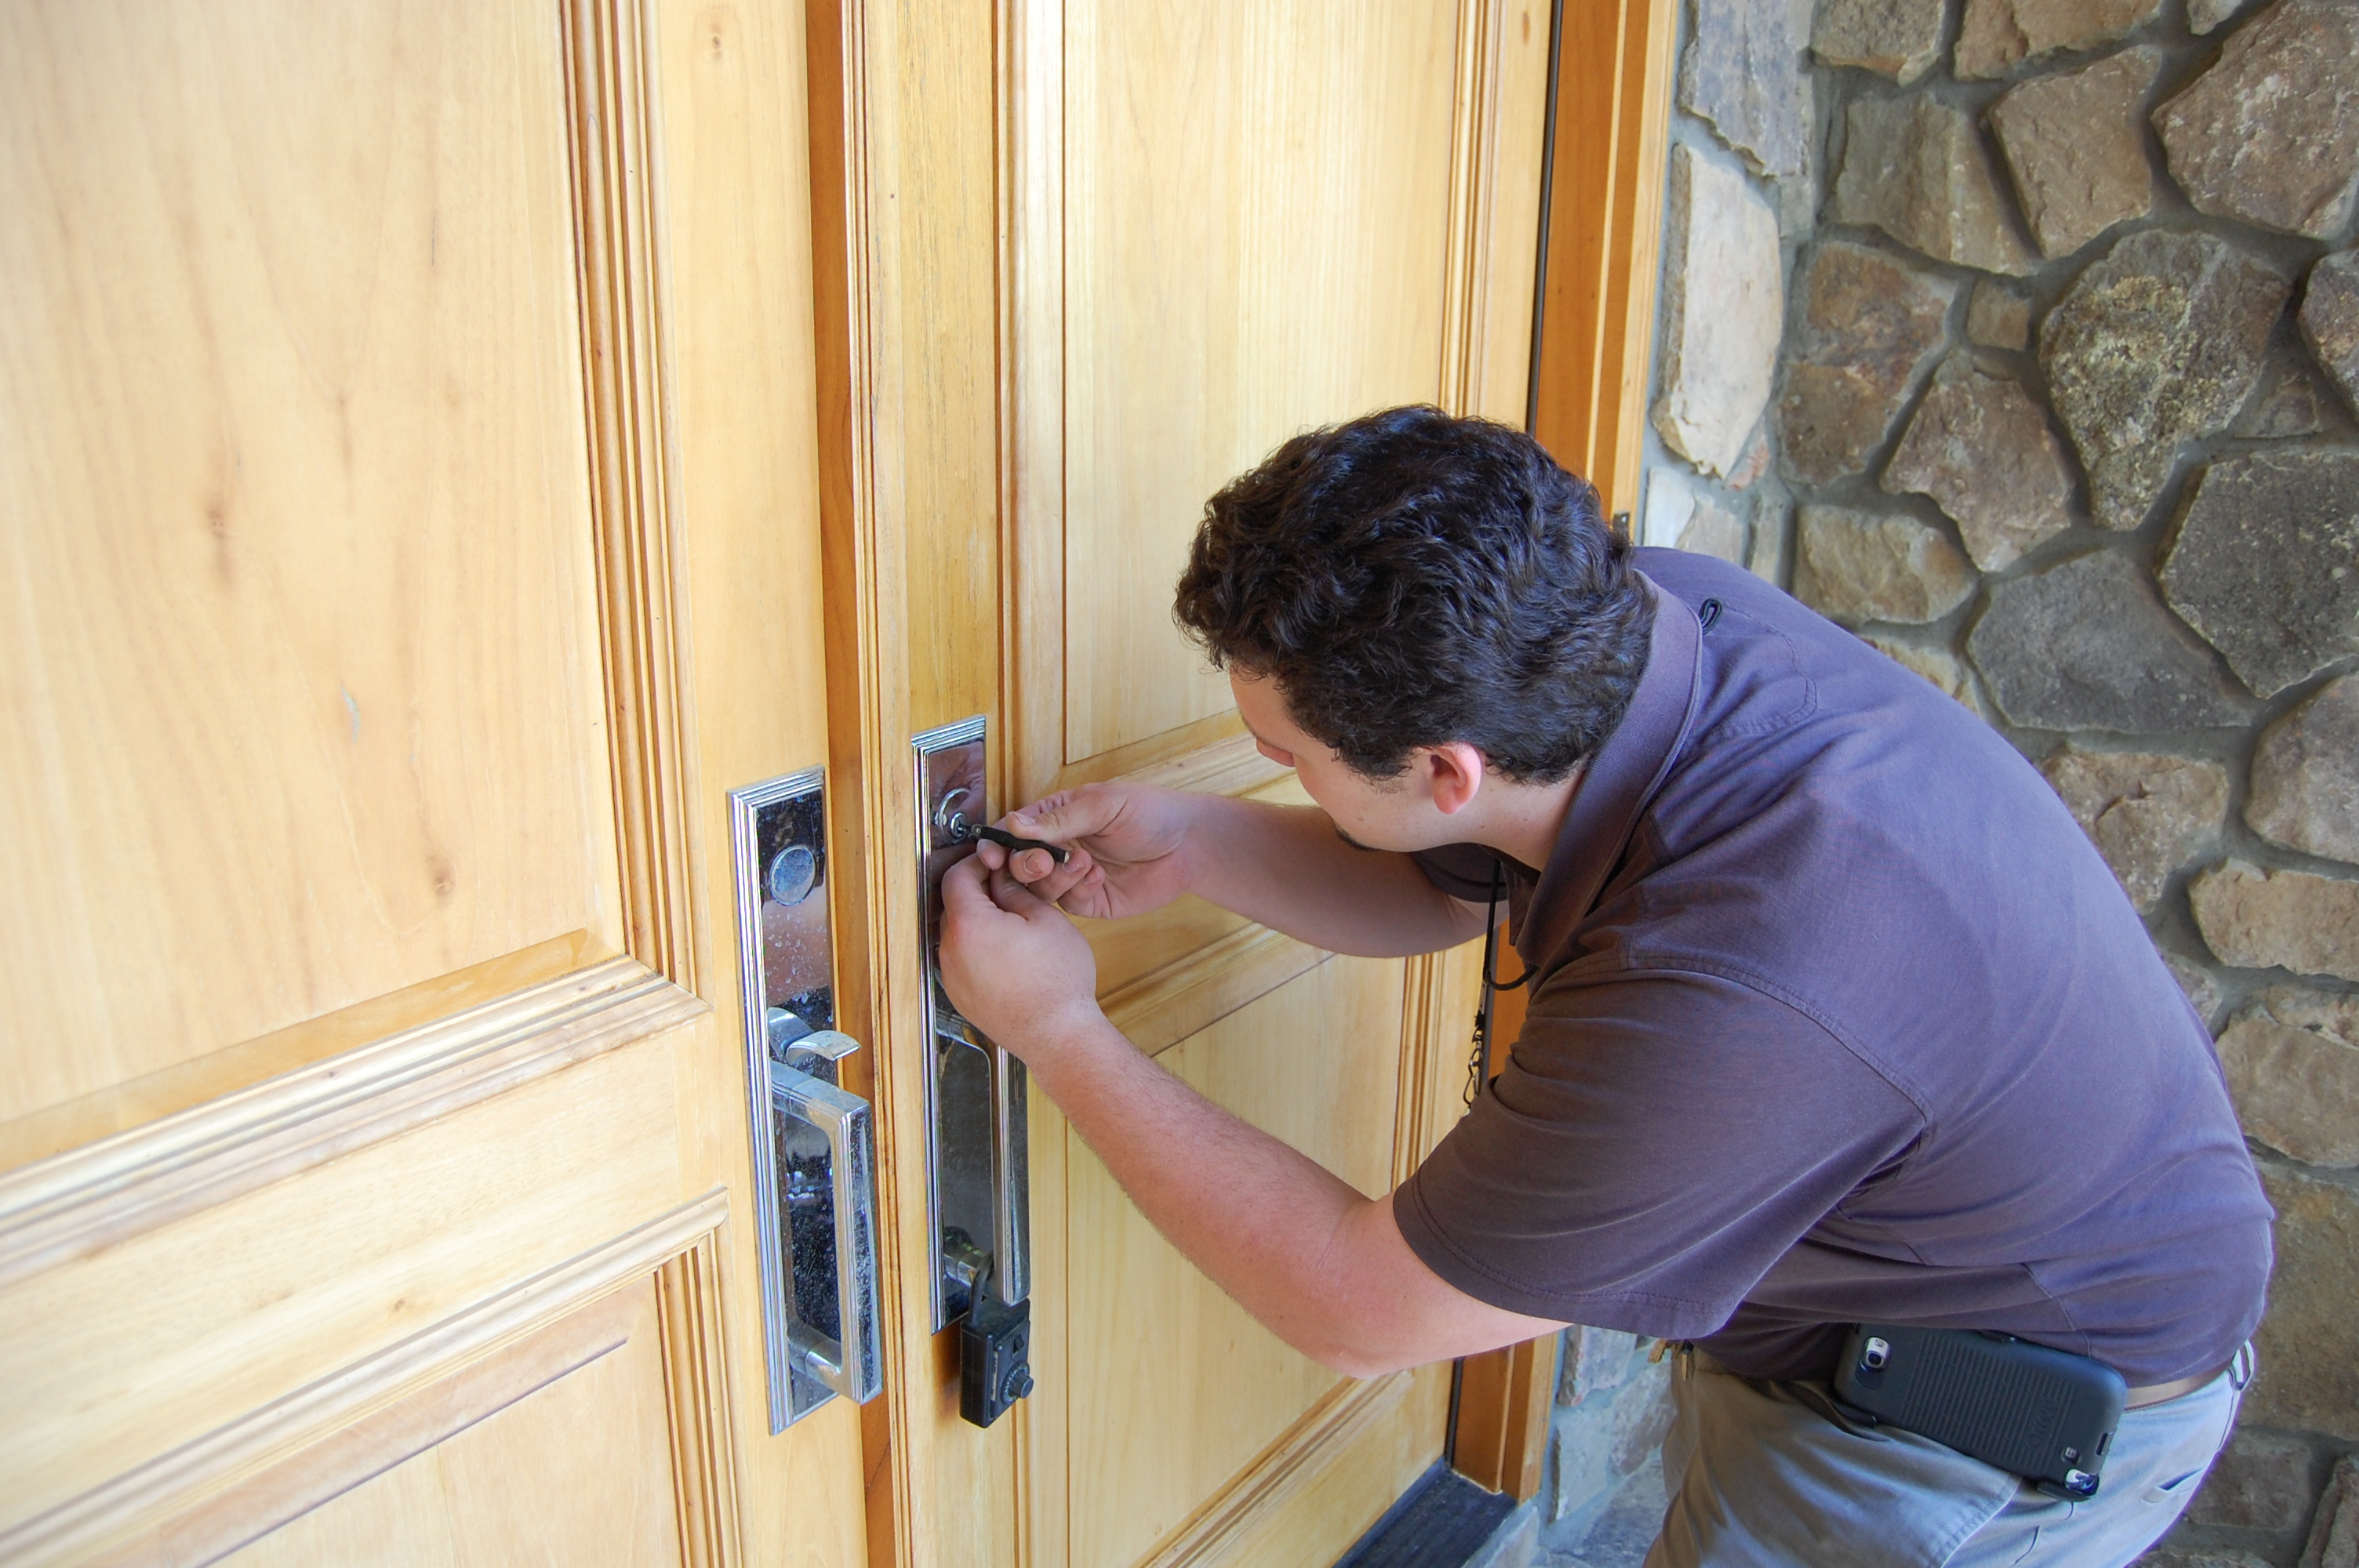 Staten Island Locksmith Services – Commercial